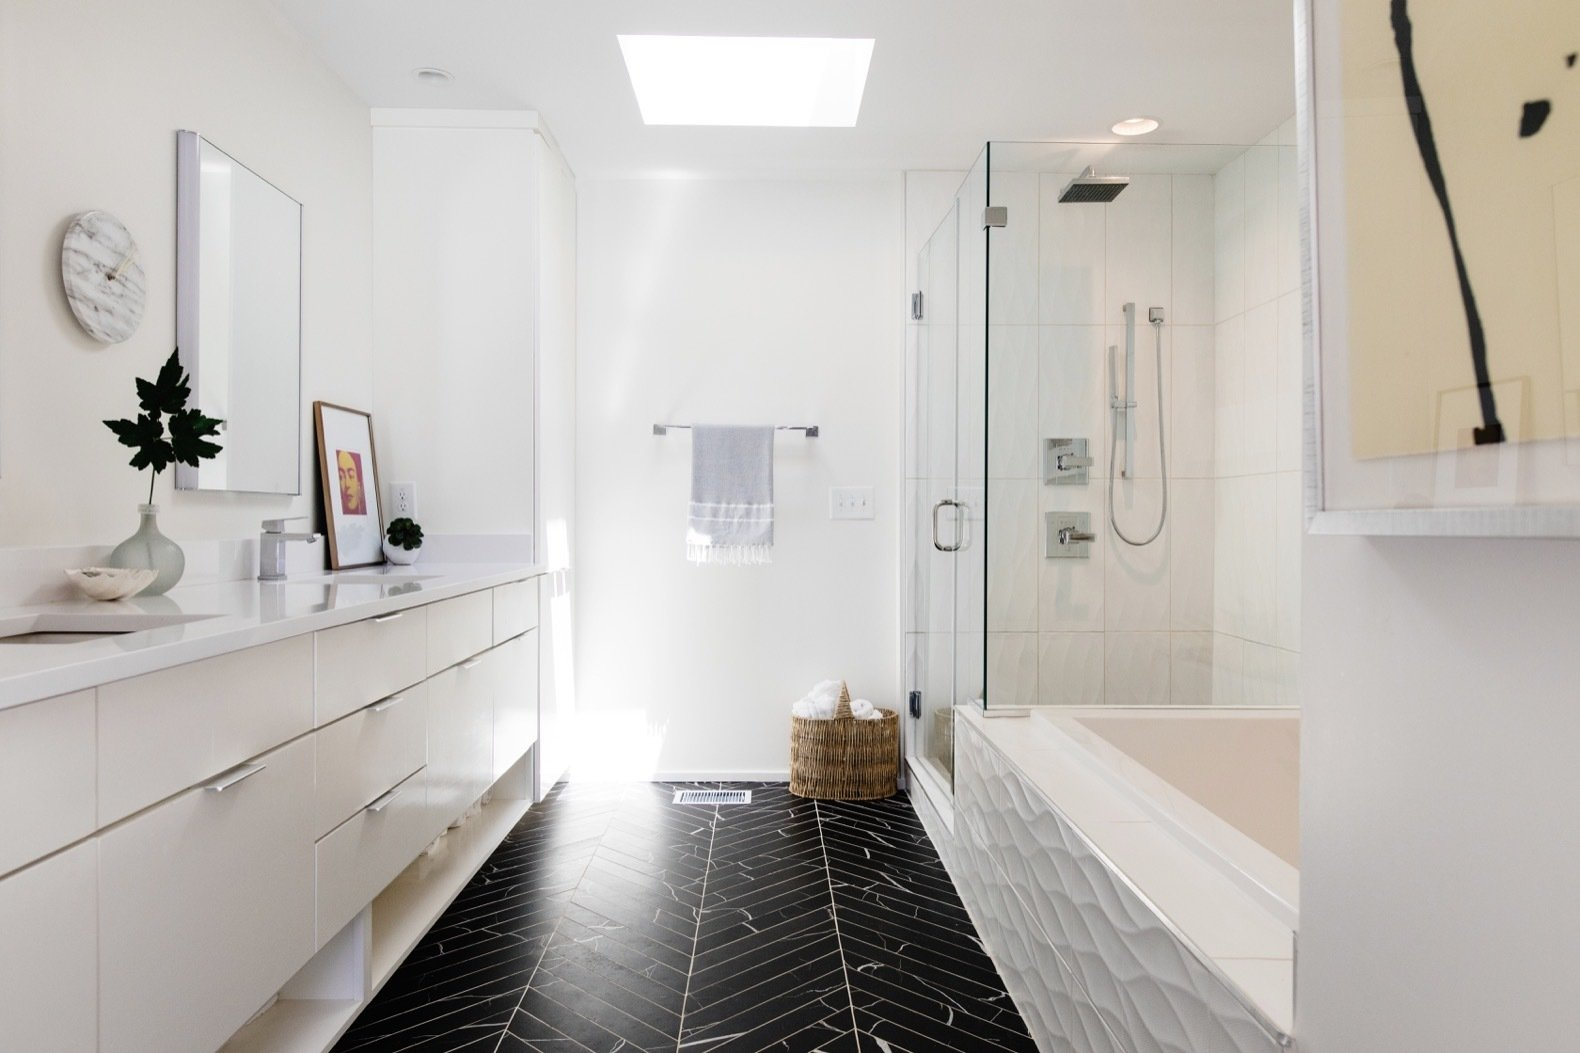 Bath, Enclosed, Recessed, Alcove, Undermount, Porcelain Tile, Soaking, Engineered Quartz, and Corner Marble-like, porcelain tile laid in a herringbone pattern gives the master bath a luxurious feel.  Best Bath Enclosed Alcove Photos from Before & After: A Nashville Midcentury Now Gleams With Natural Light